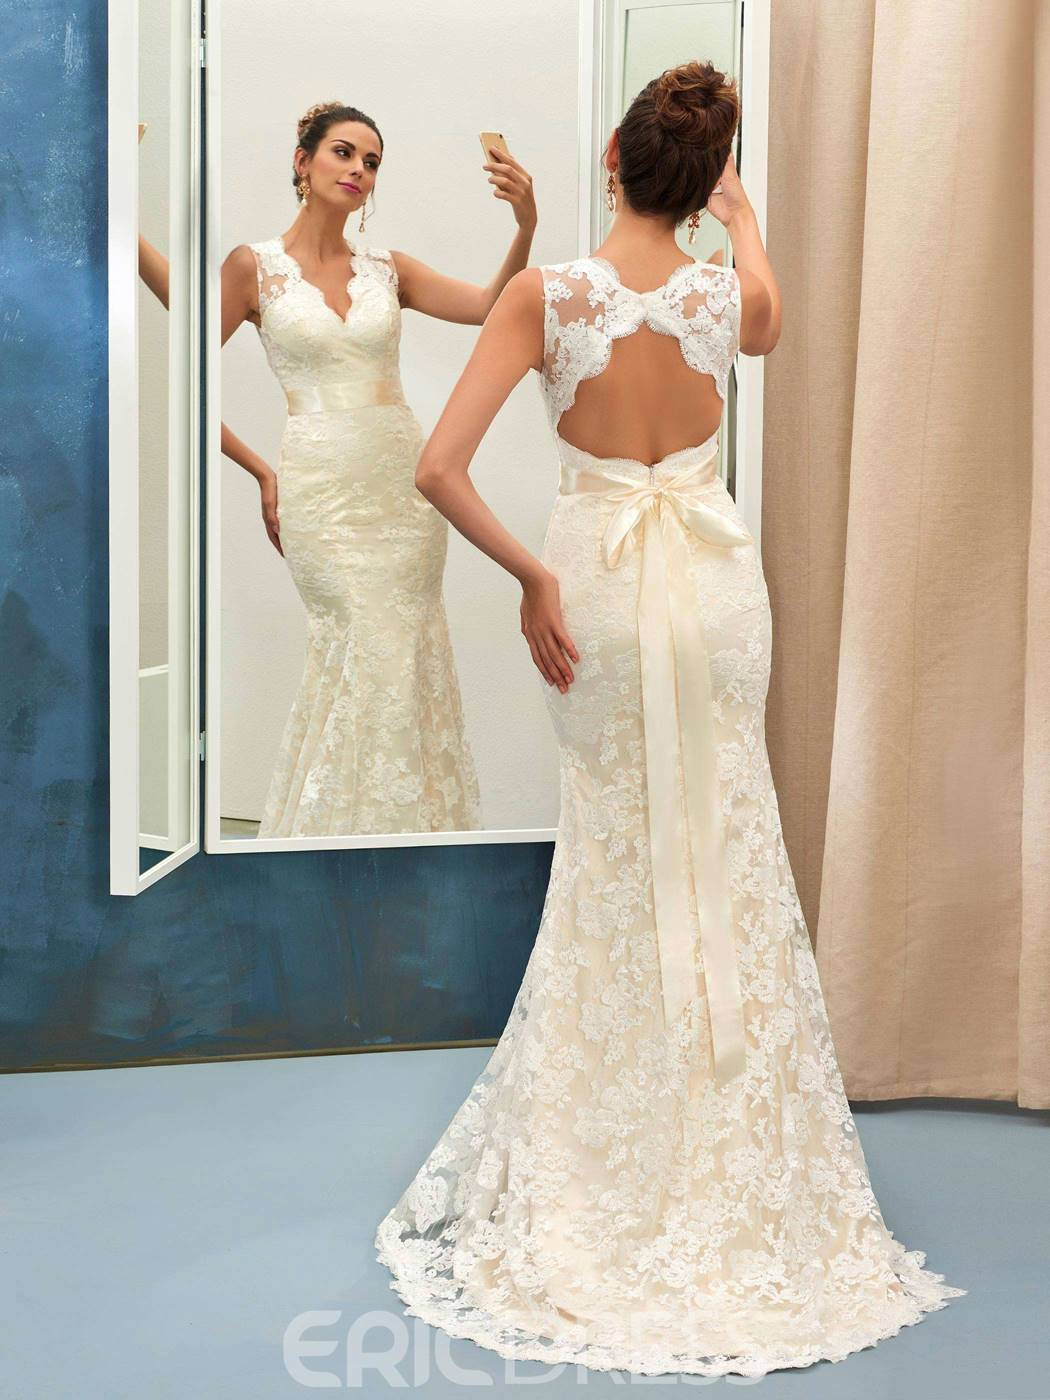 a4b539bd7e2 Ericdress Charming V Neck Backless Lace Mermaid Wedding Dress ...